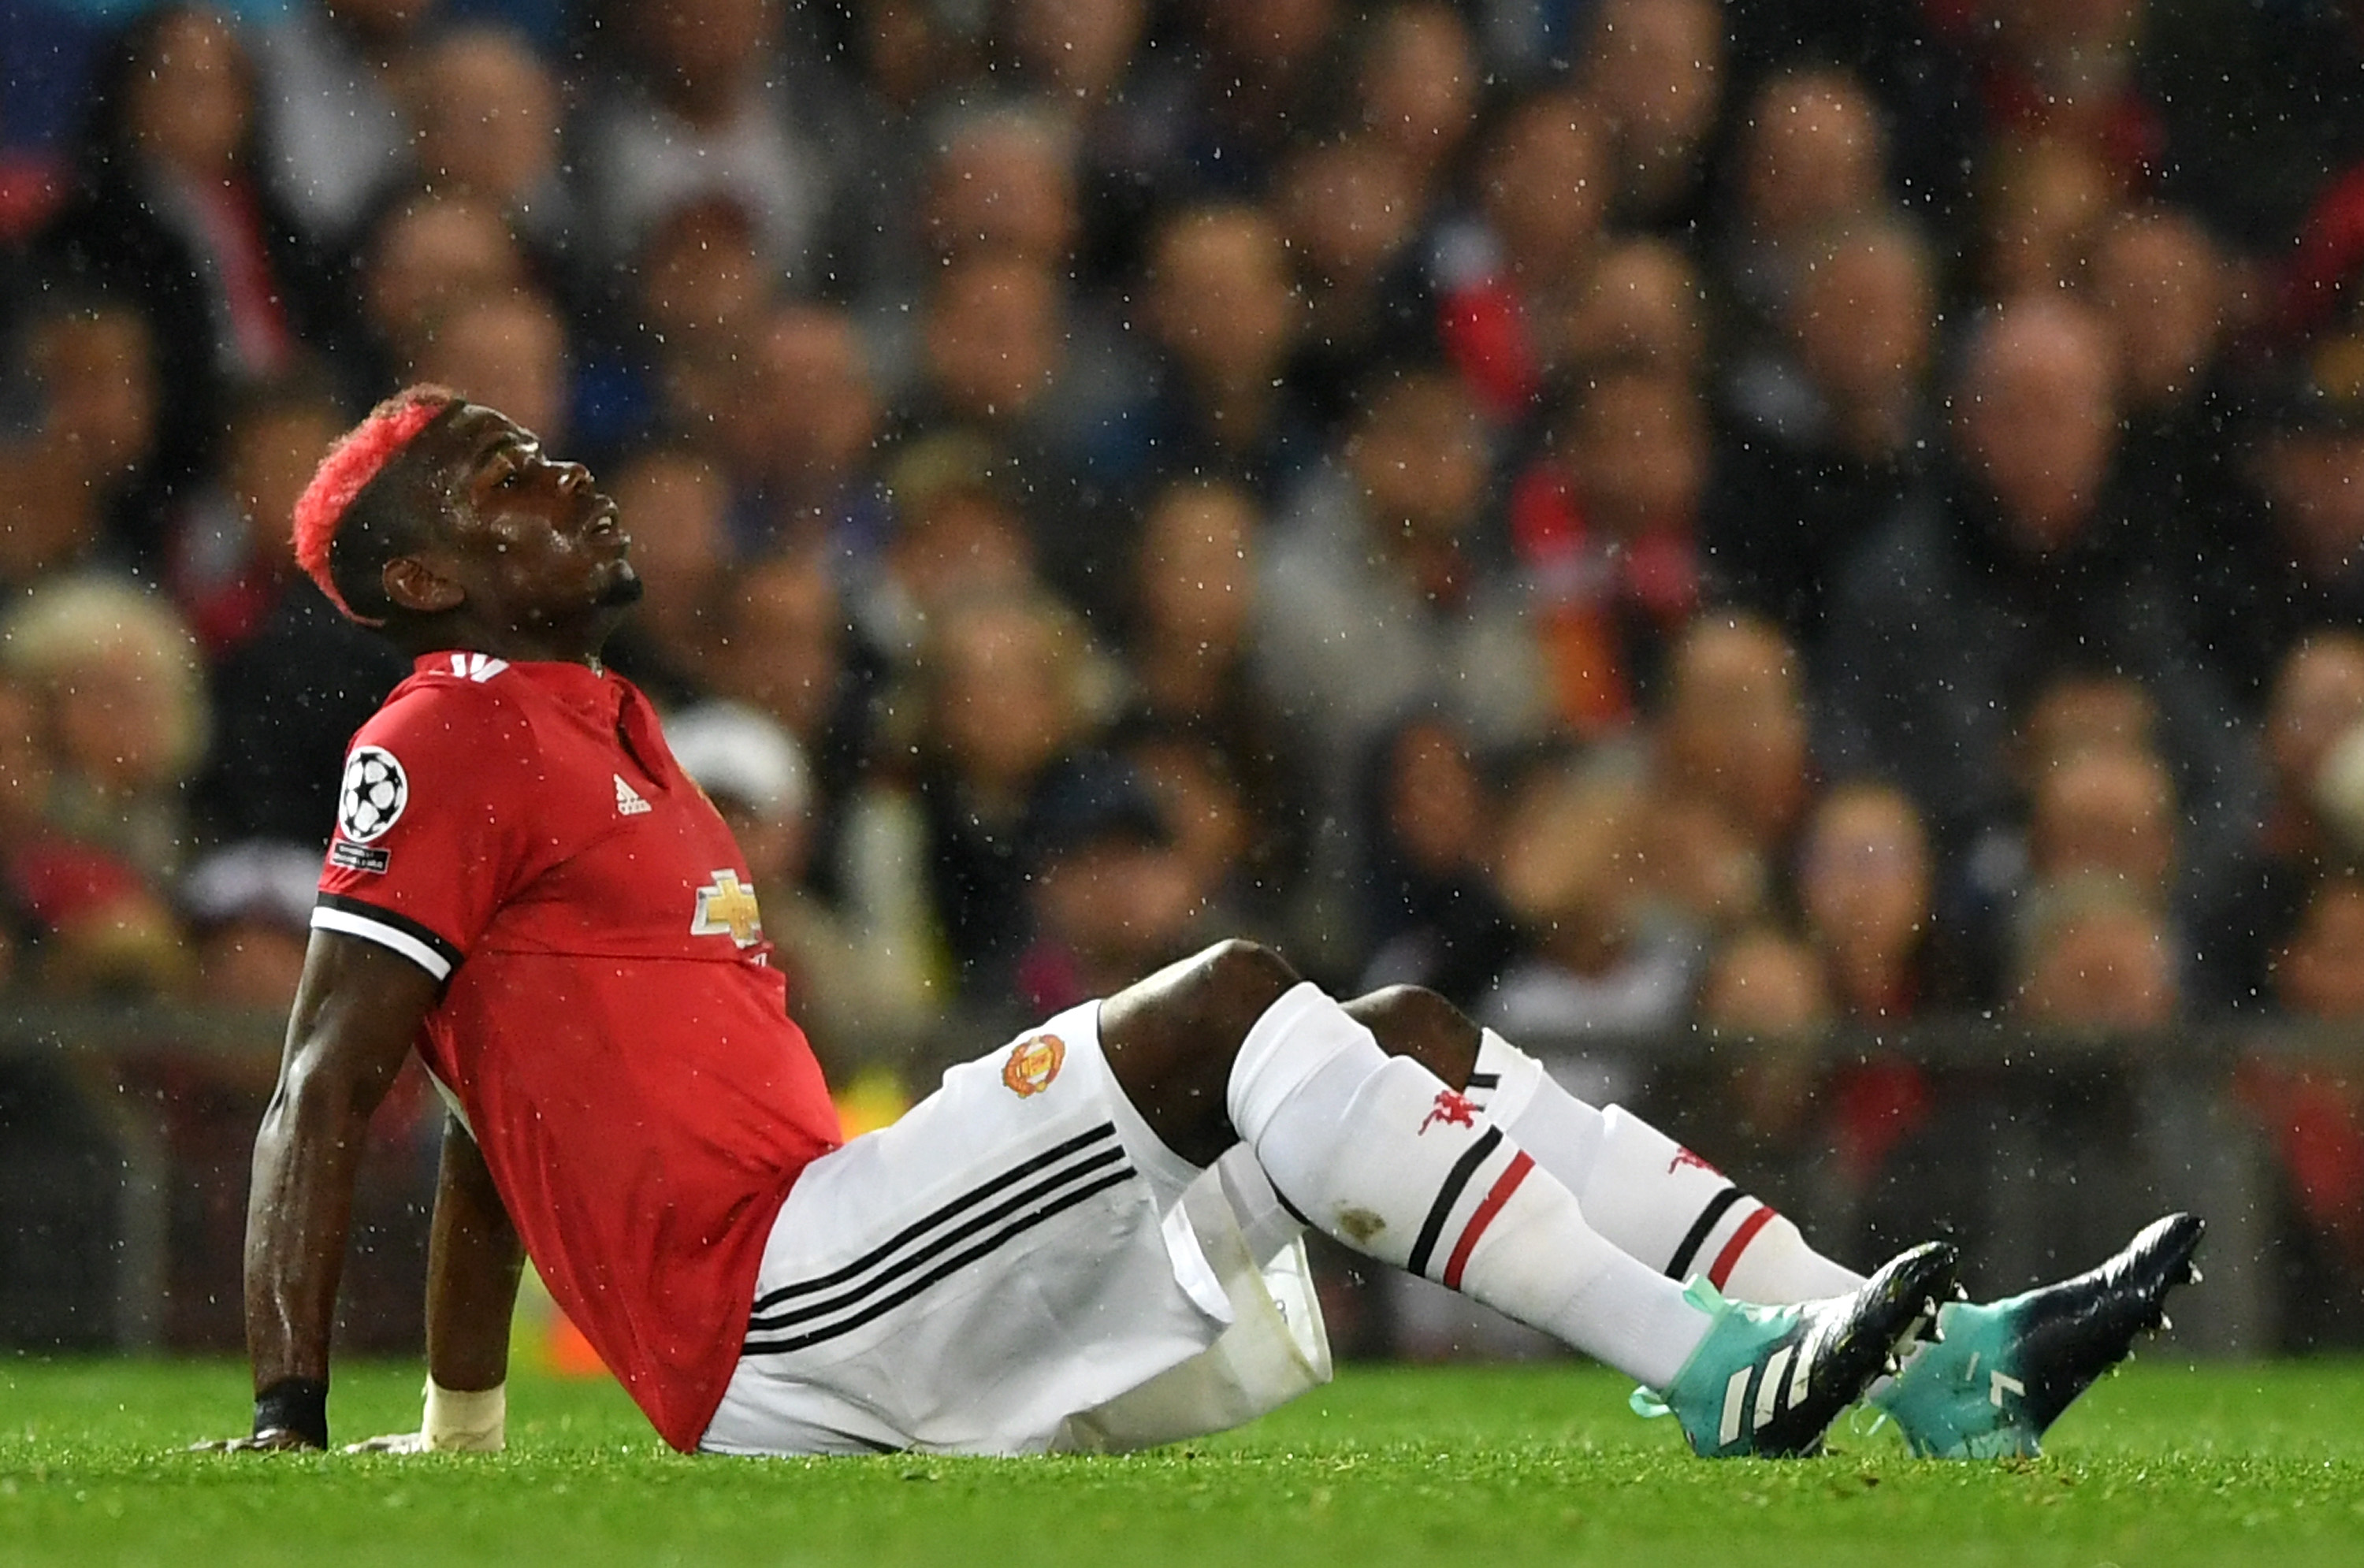 Manchester United midfielder Paul Pogba's injury is 'long-term', confirms manager Jose Mourinho